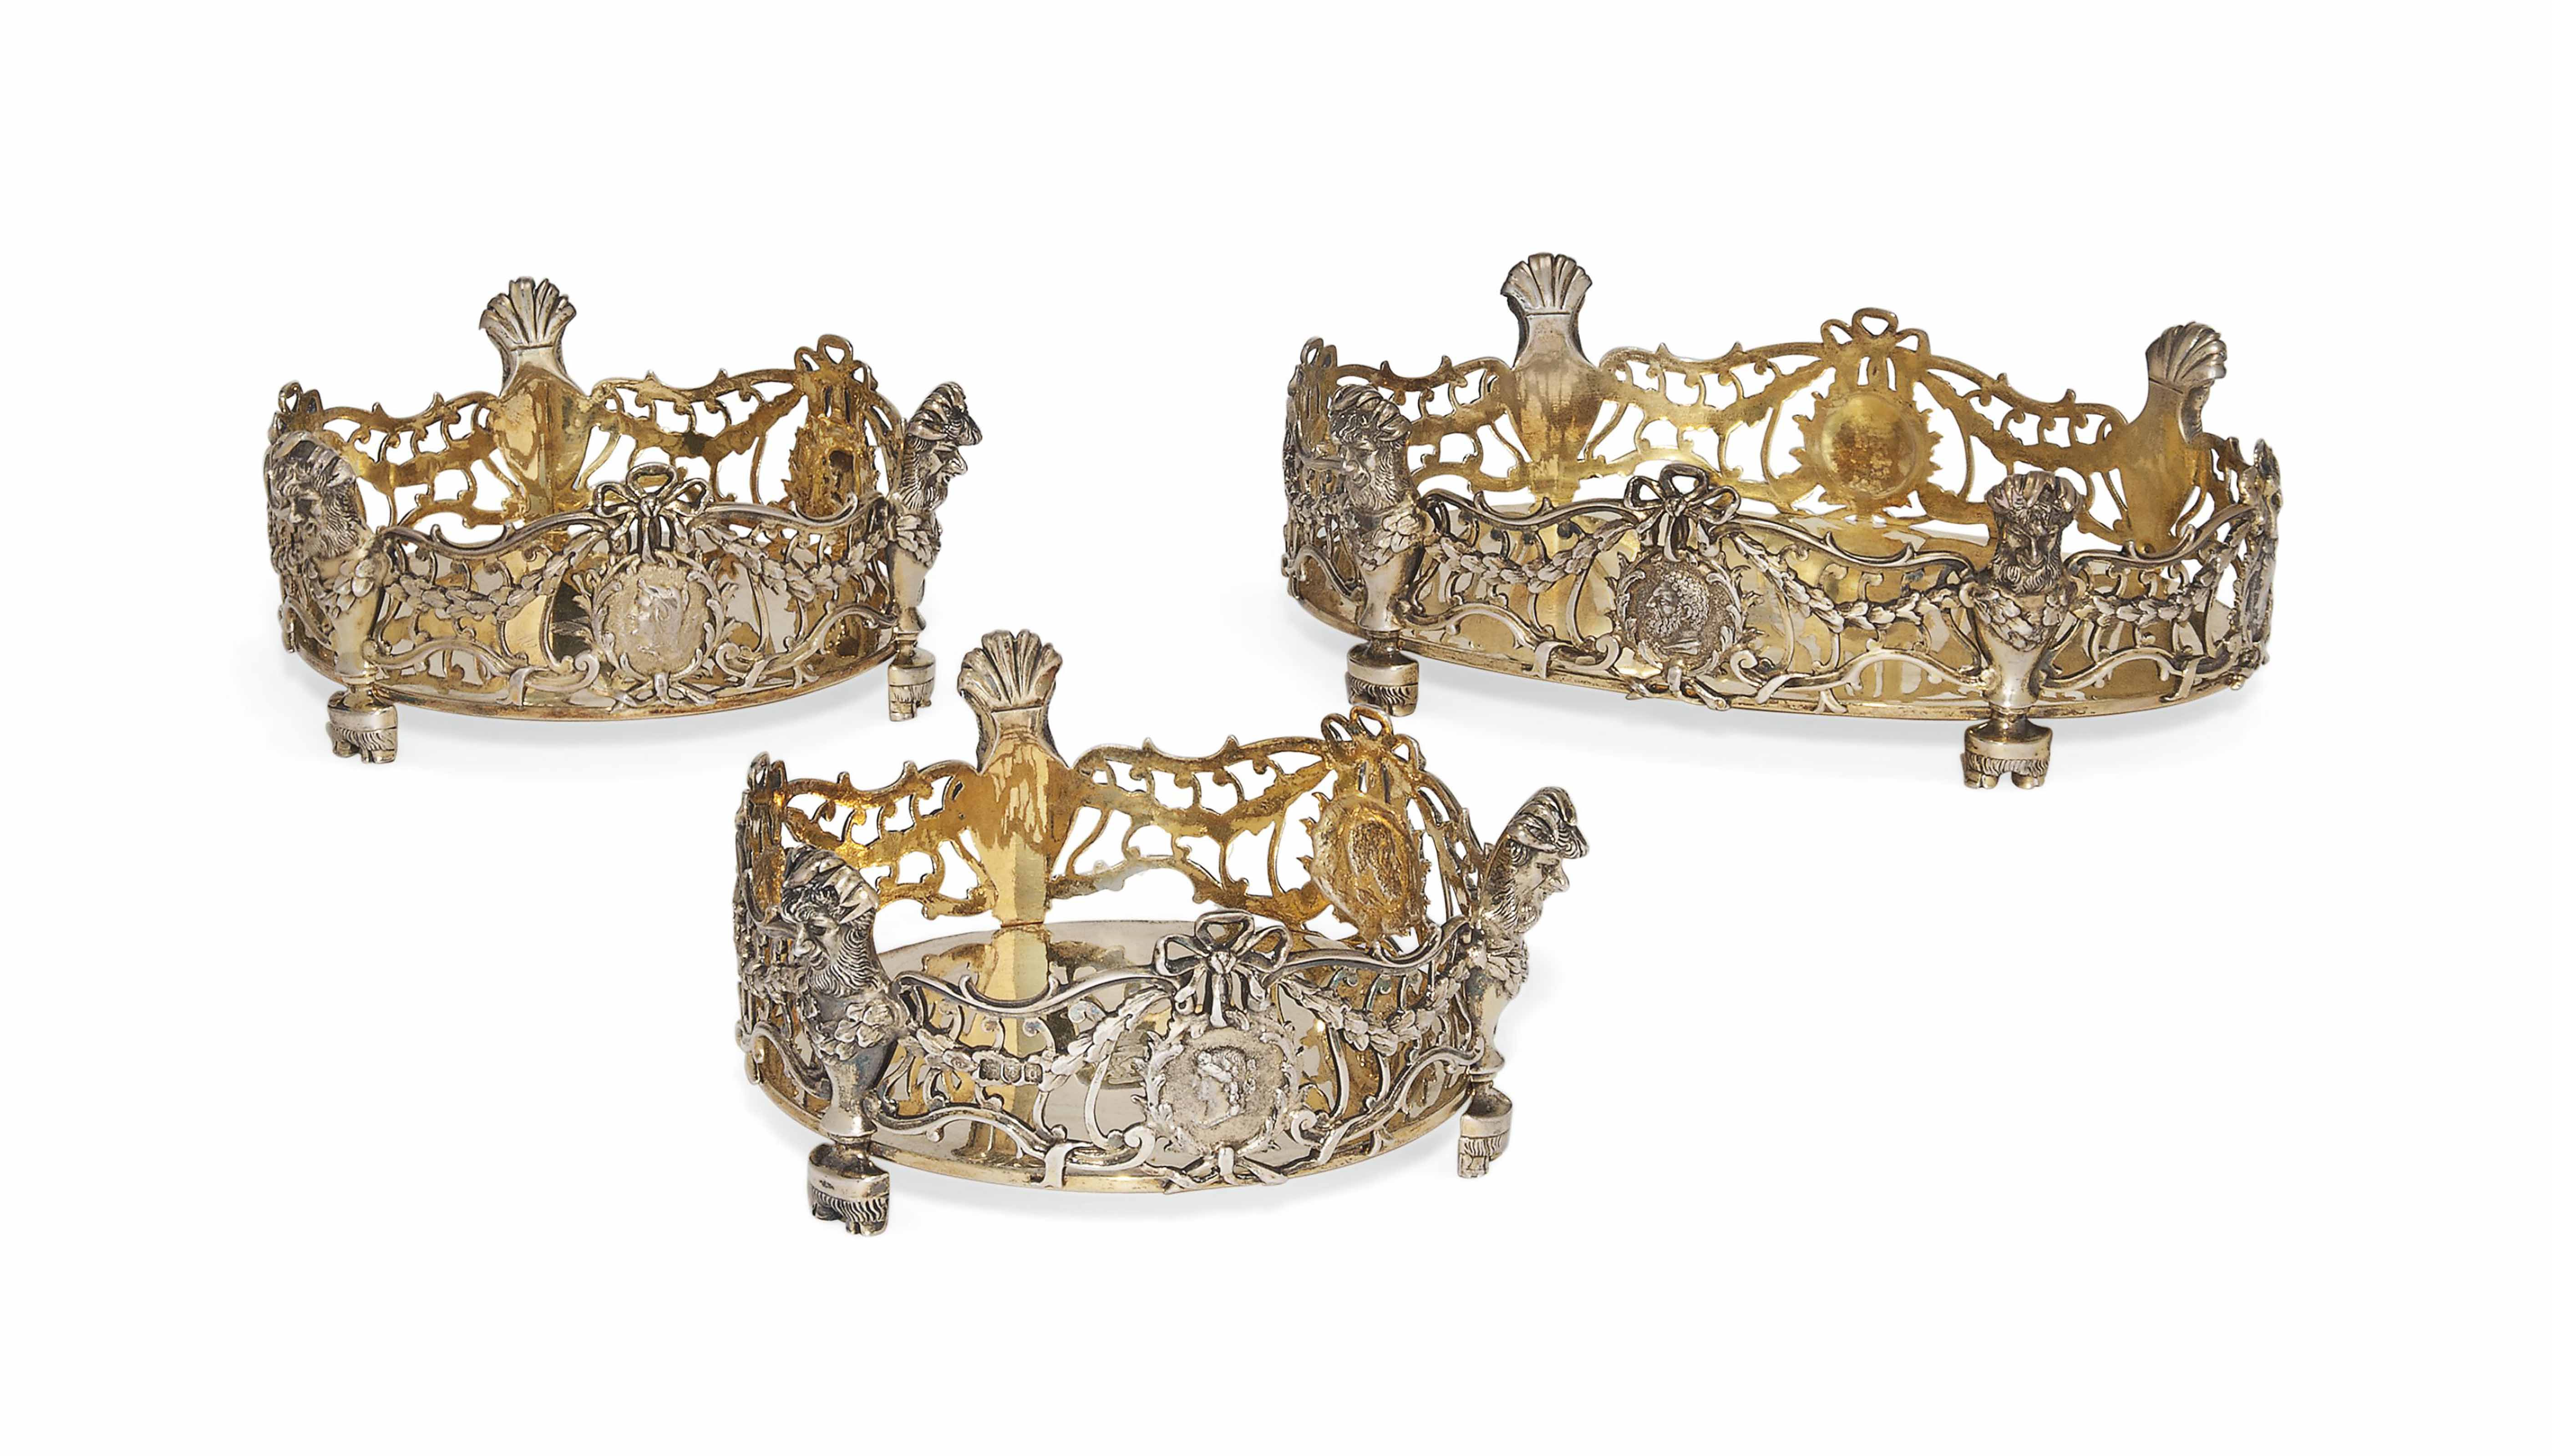 A SUITE OF THREE LATE VICTORIAN SILVER-GILT COASTERS IN 18TH CENTURY DUTCH STYLE